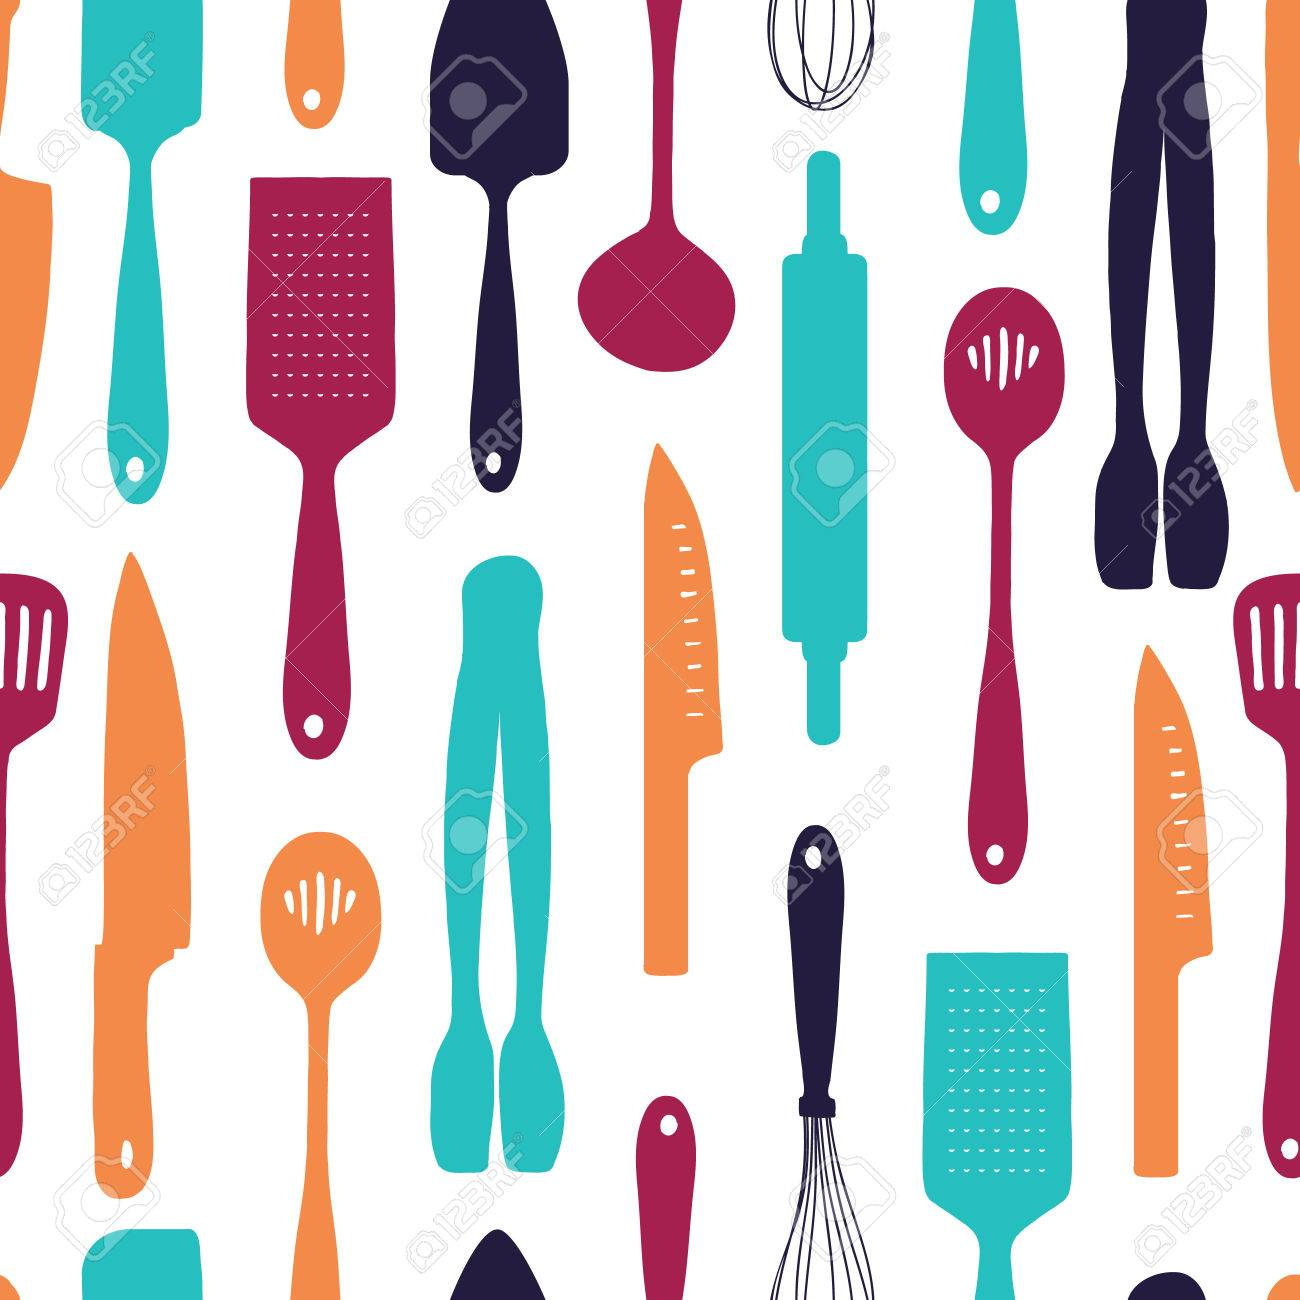 Seamless Background With A Pattern Of Silhouette Cutlery Vertical 1300x1300